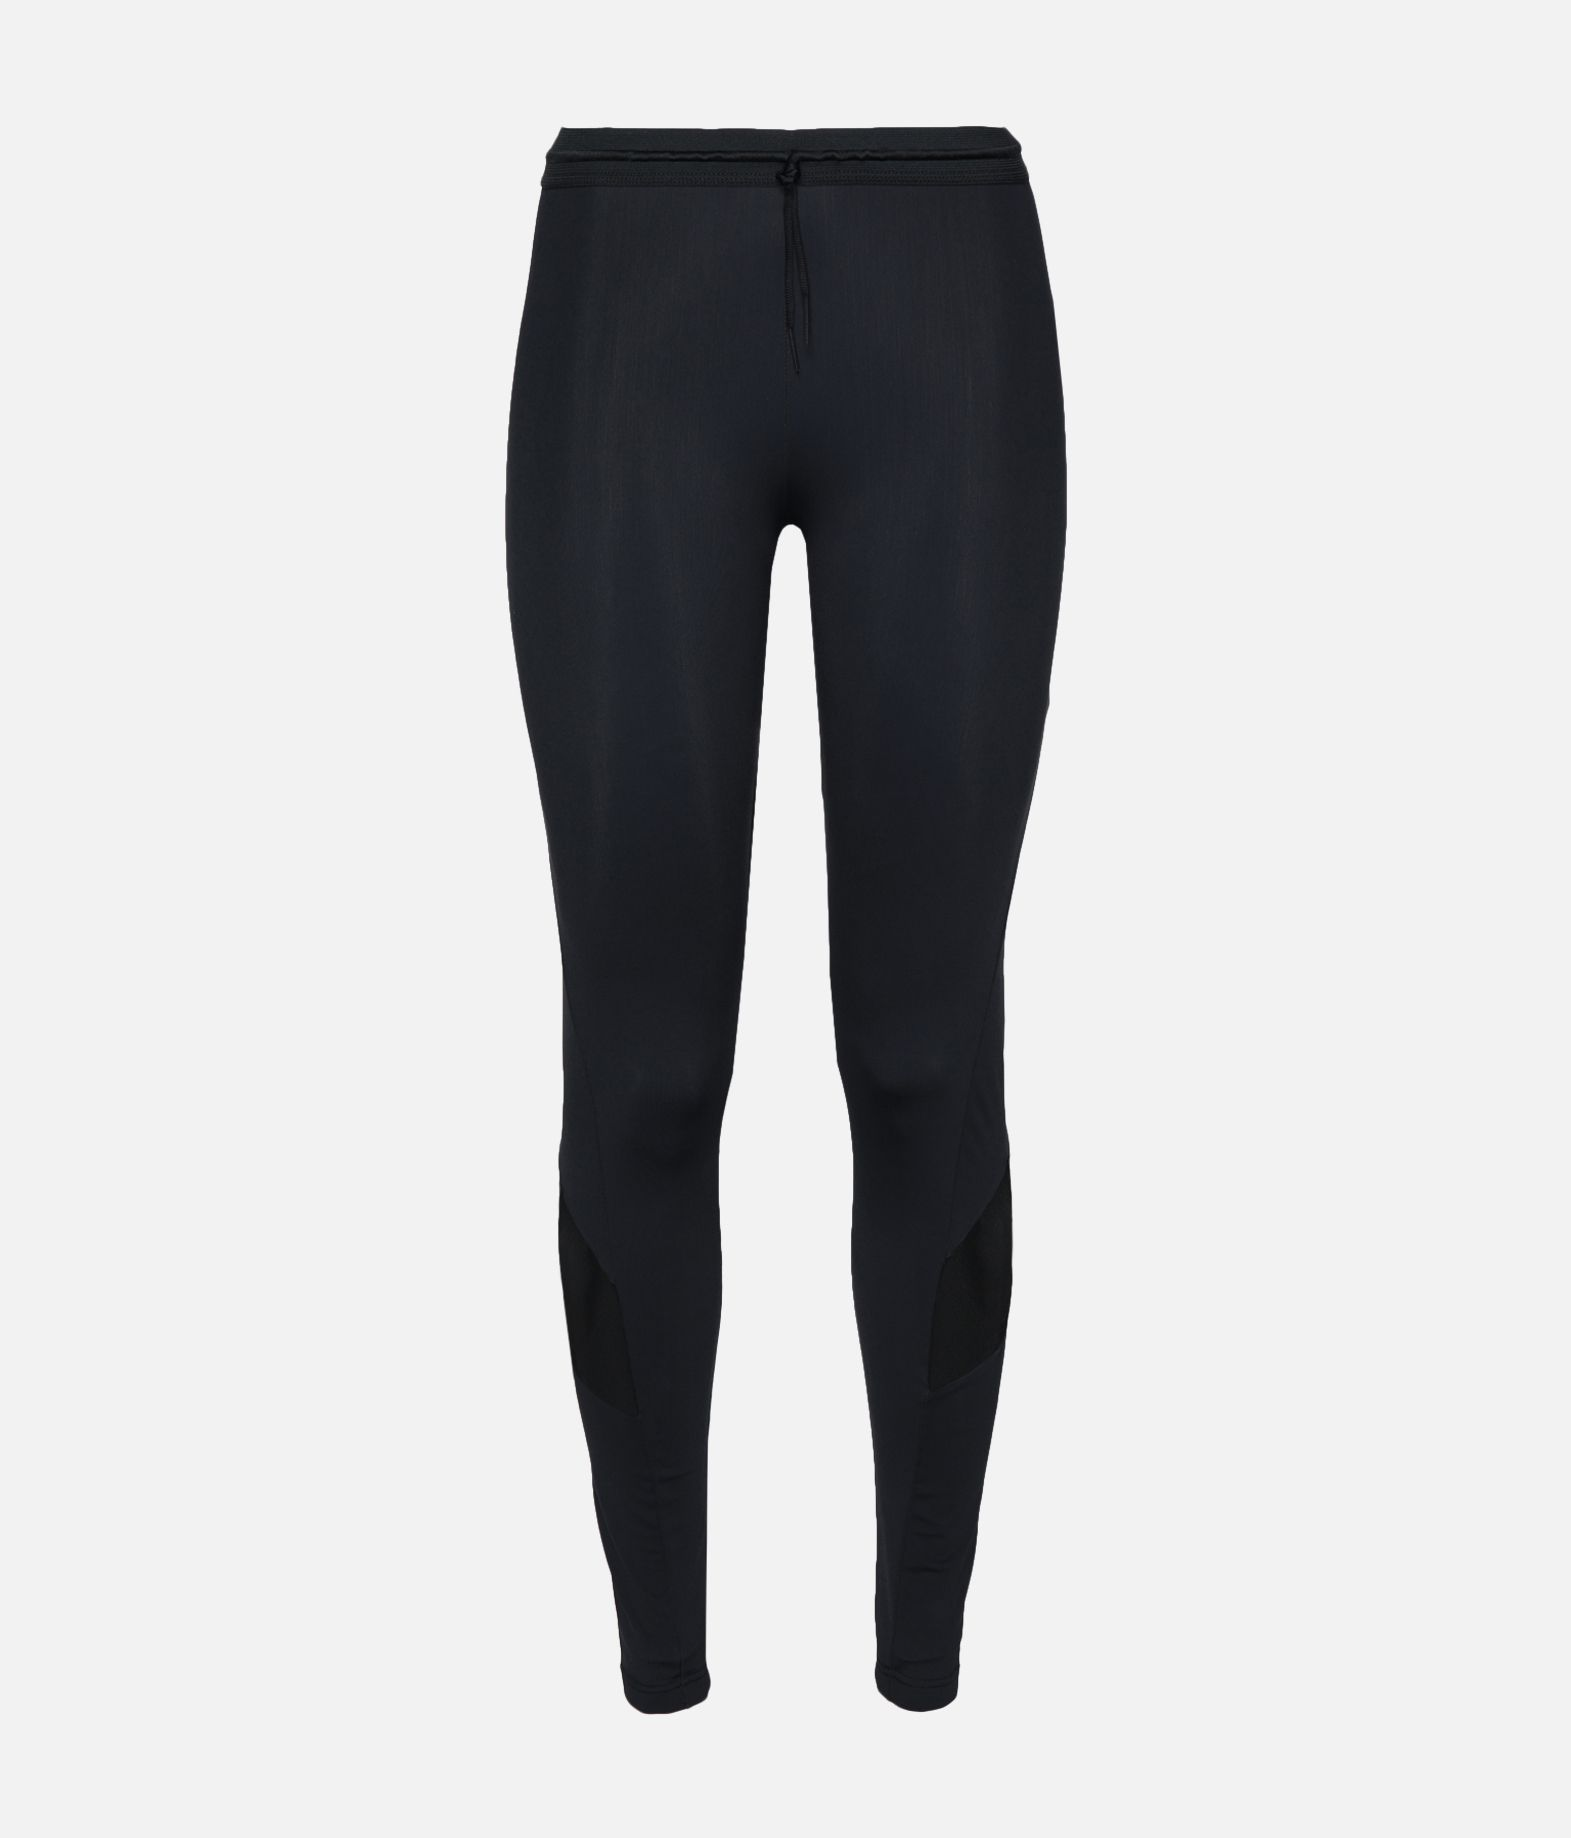 Y-3 Y-3 New Classic Tights Leggings Donna f